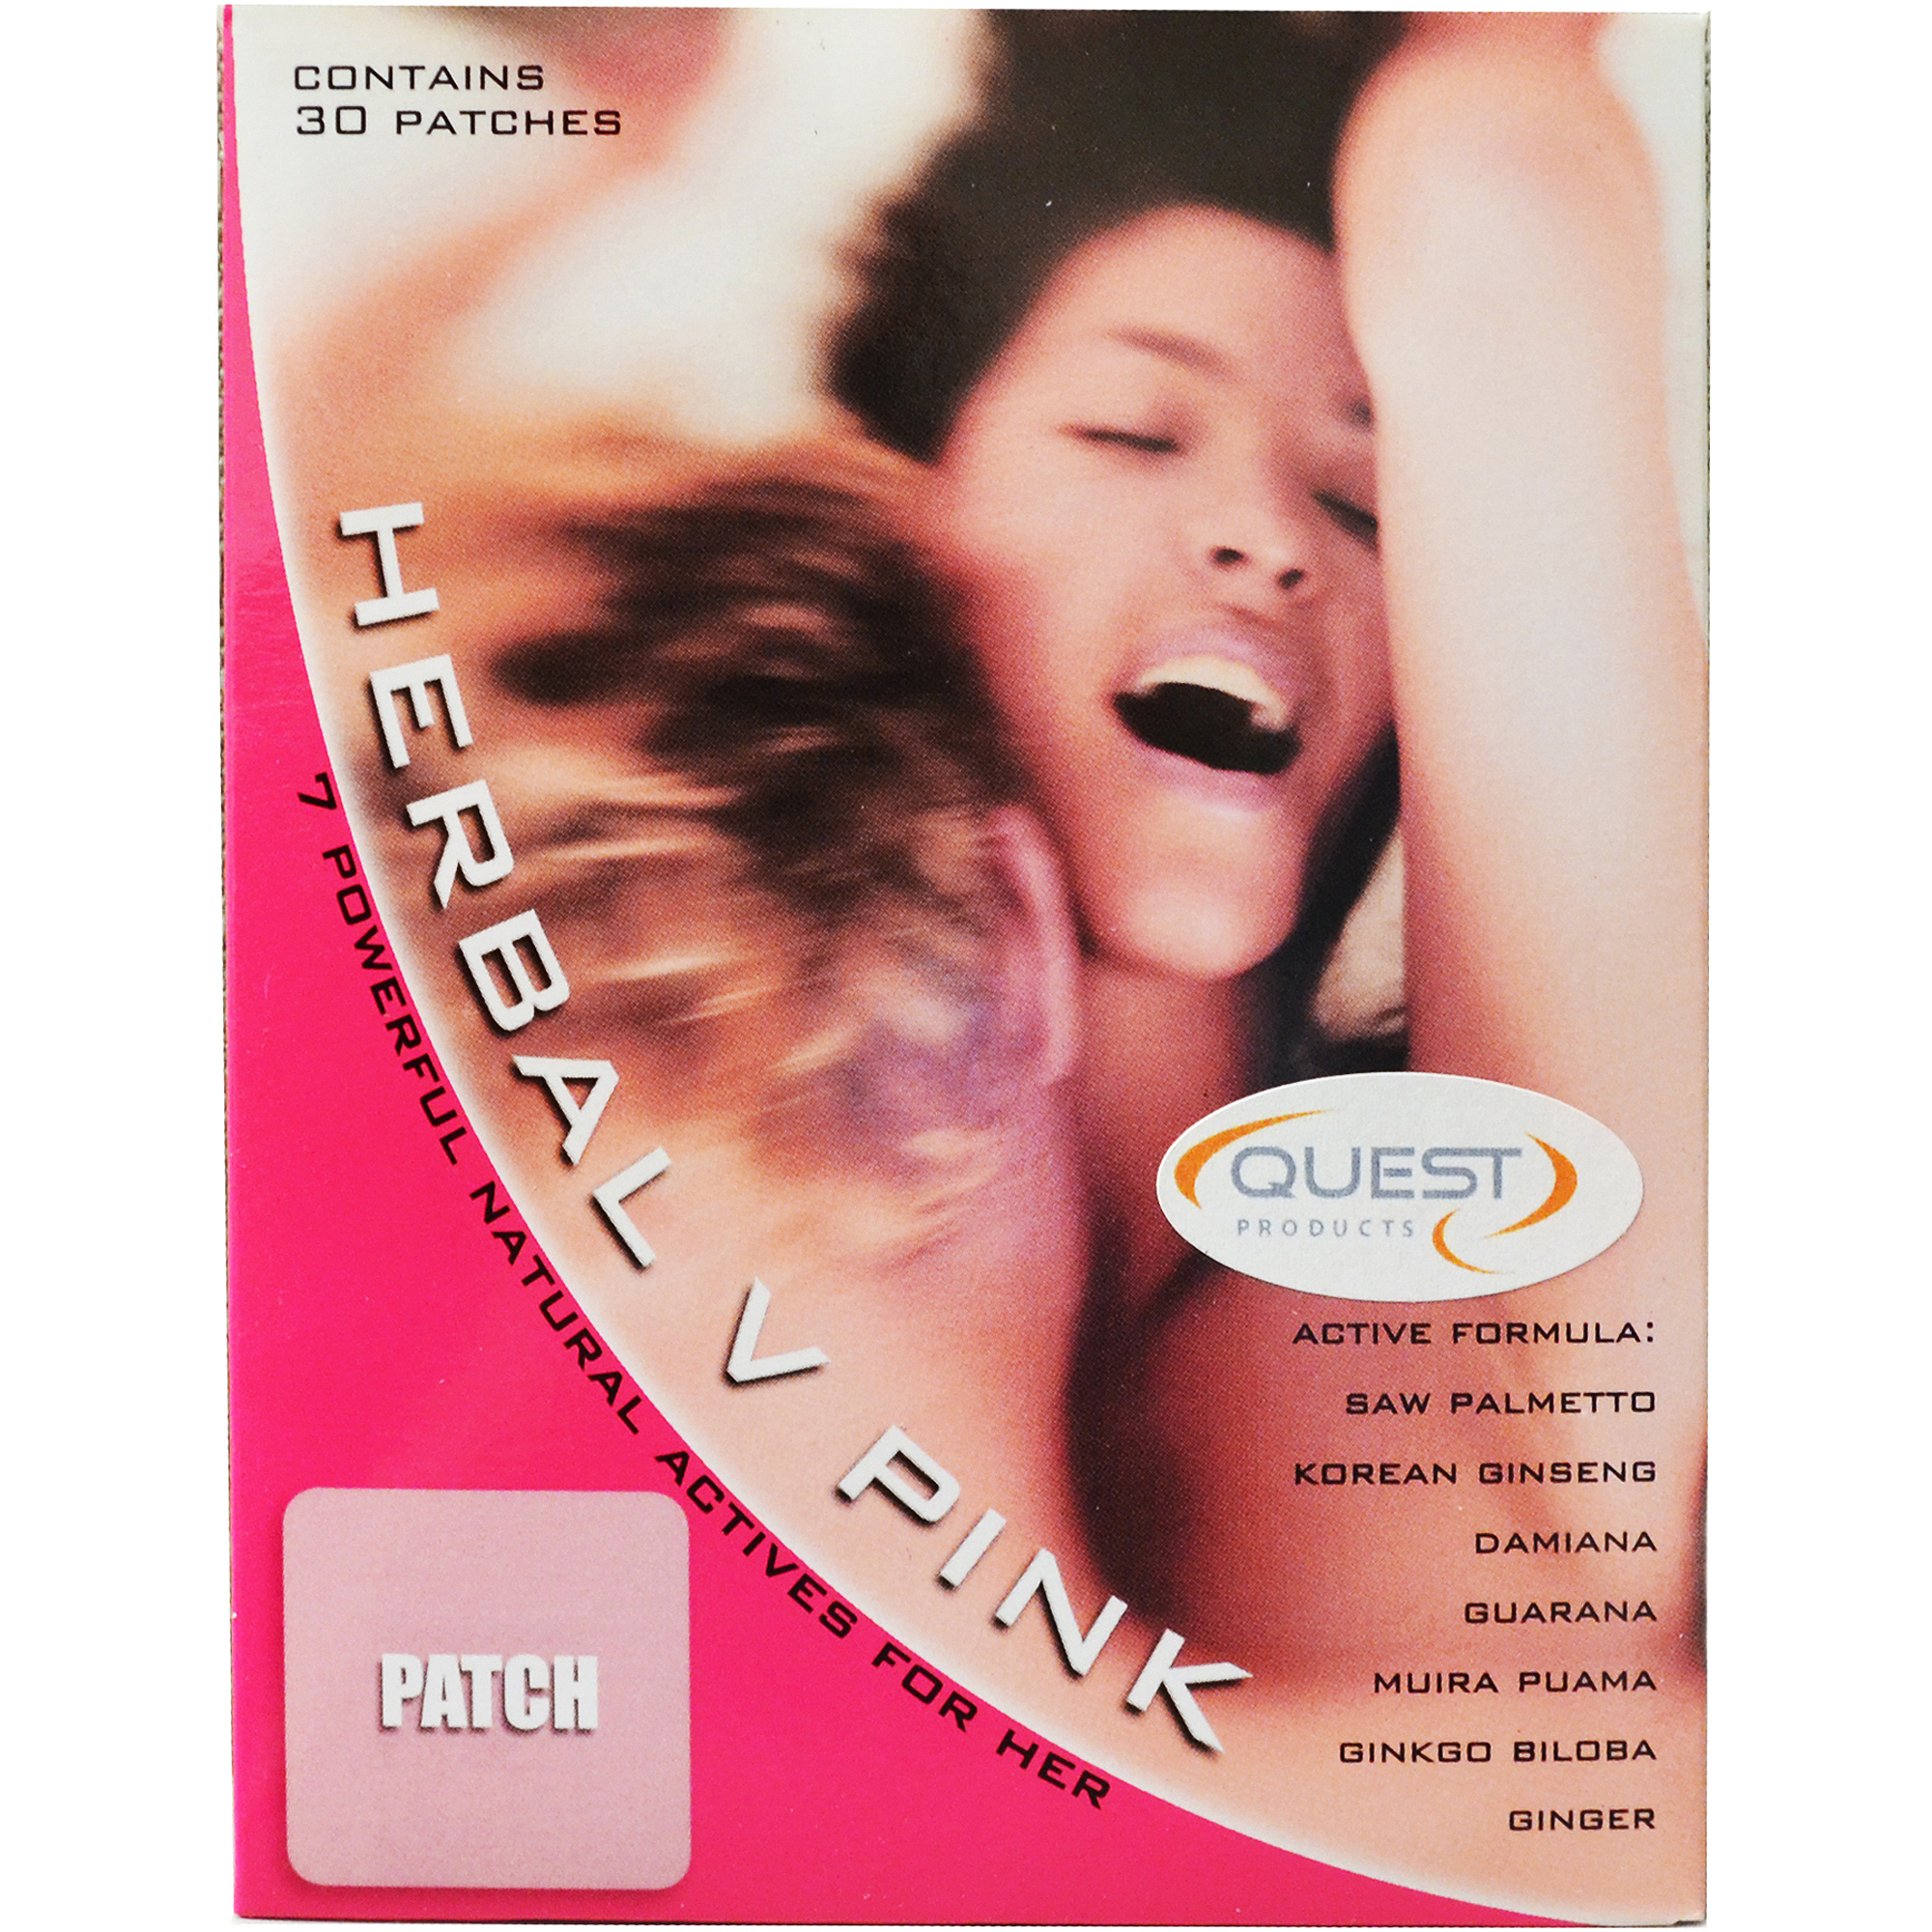 Quest Herbal V Pink Female Libido Patch, 30 count